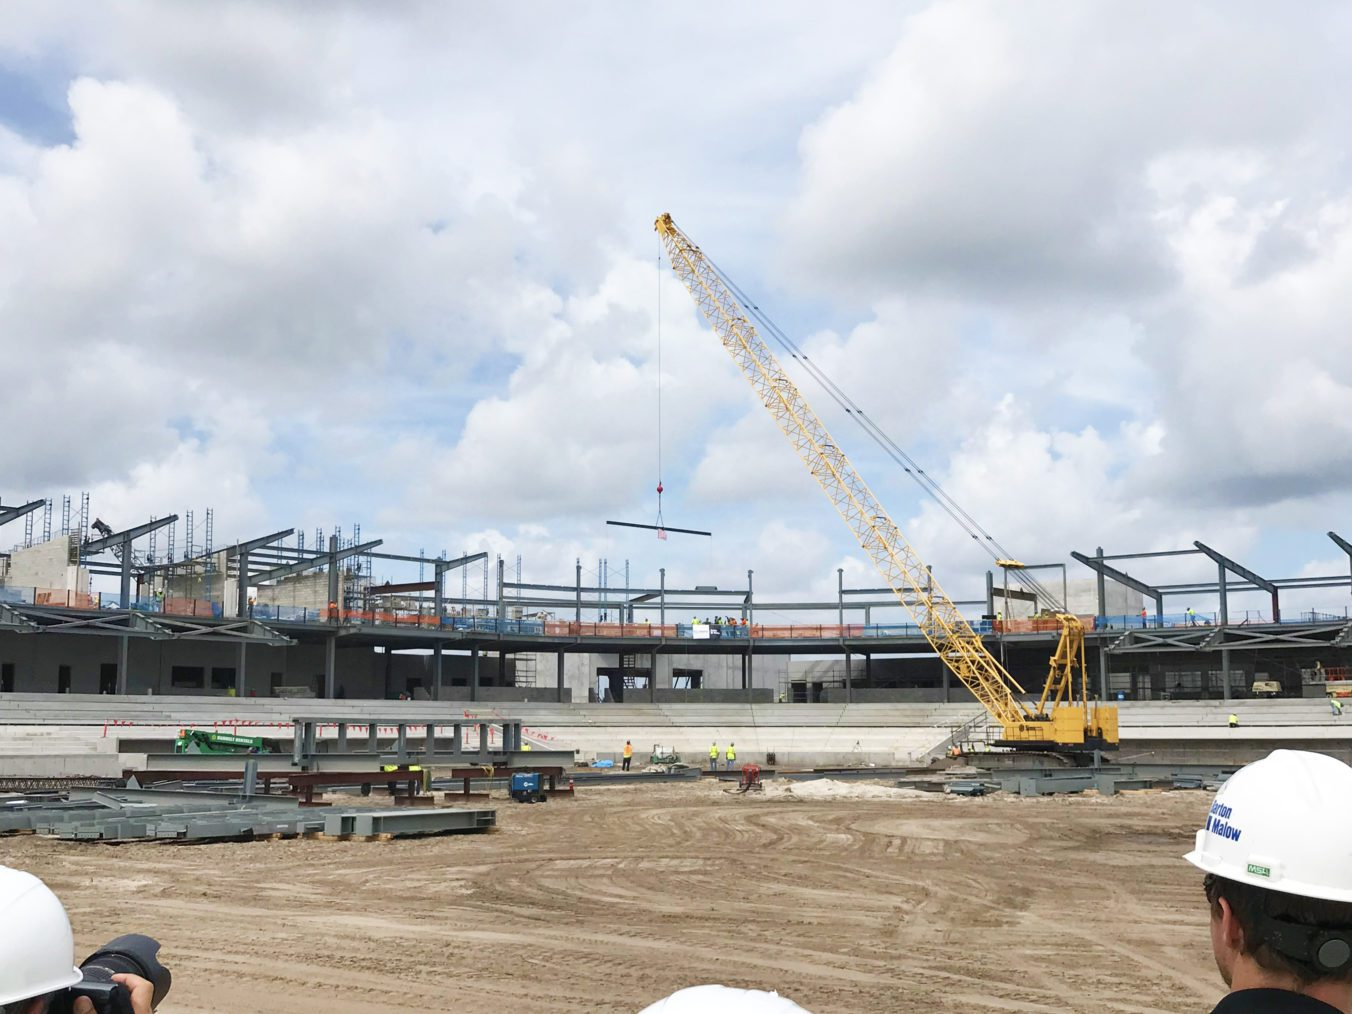 Steel construction topping out on the main stadium facility.